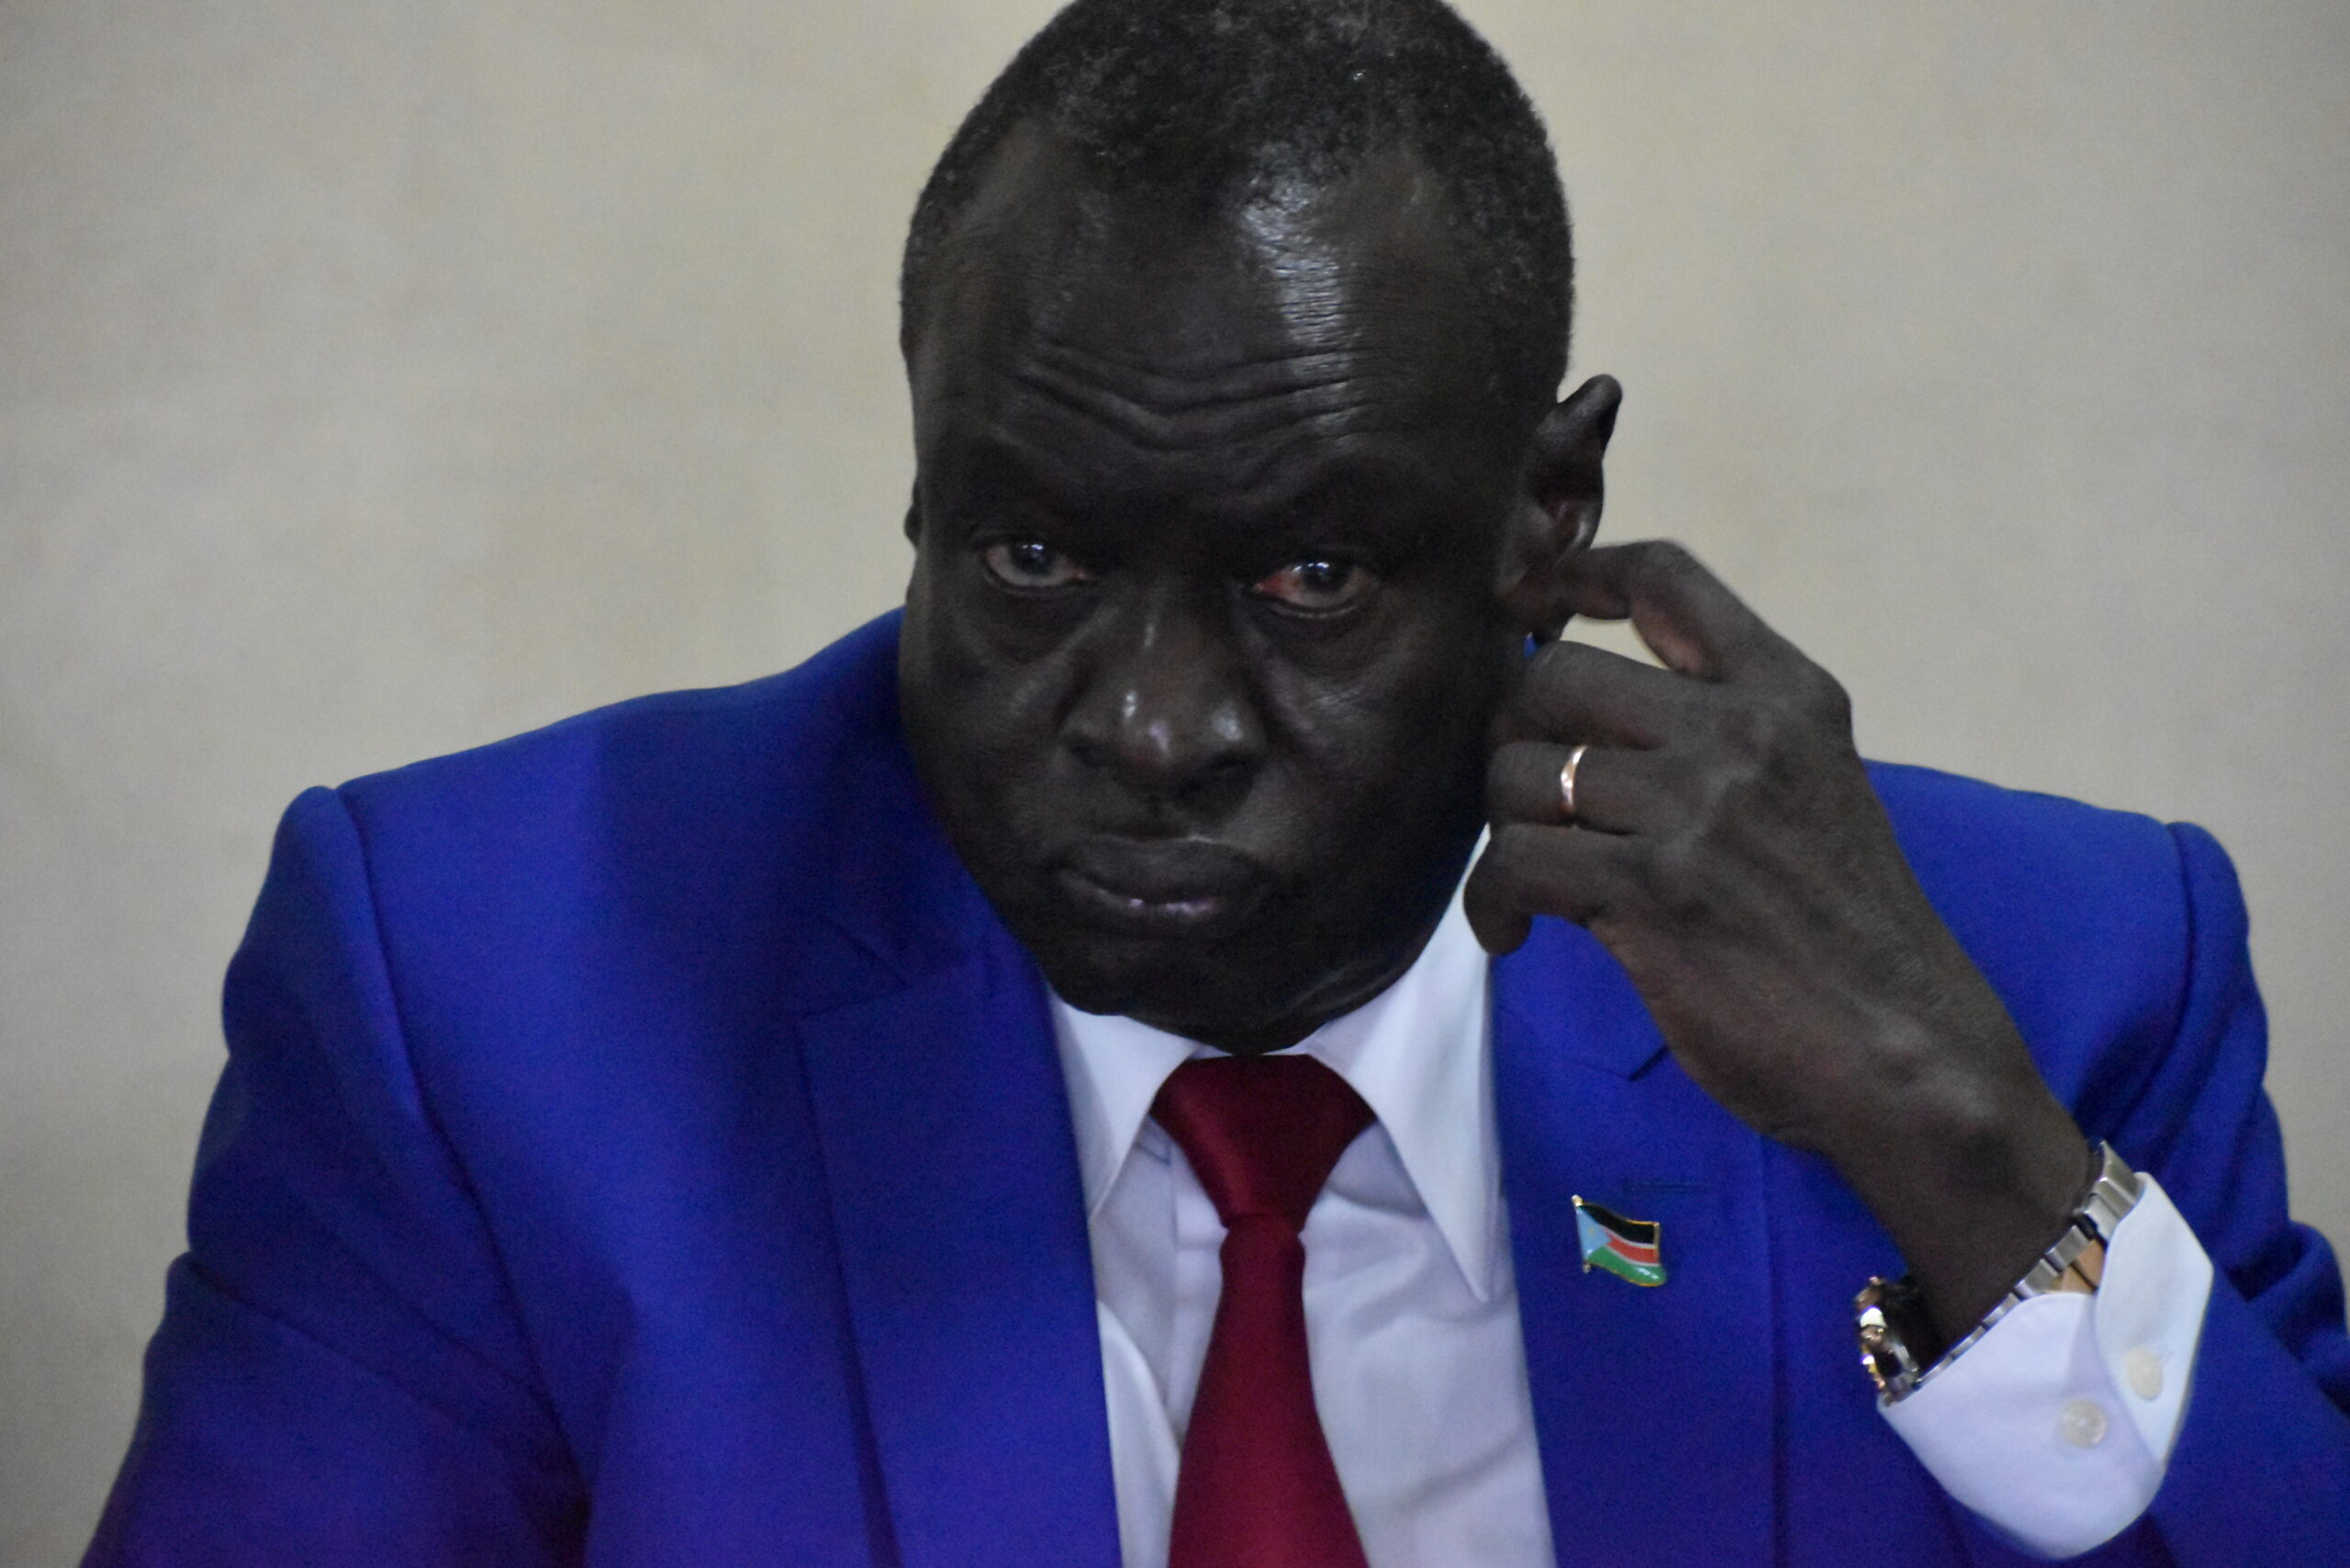 Salvatore Garang Mabiordit Wol is the 8th Finance Minister fired by President Kiir since 2011